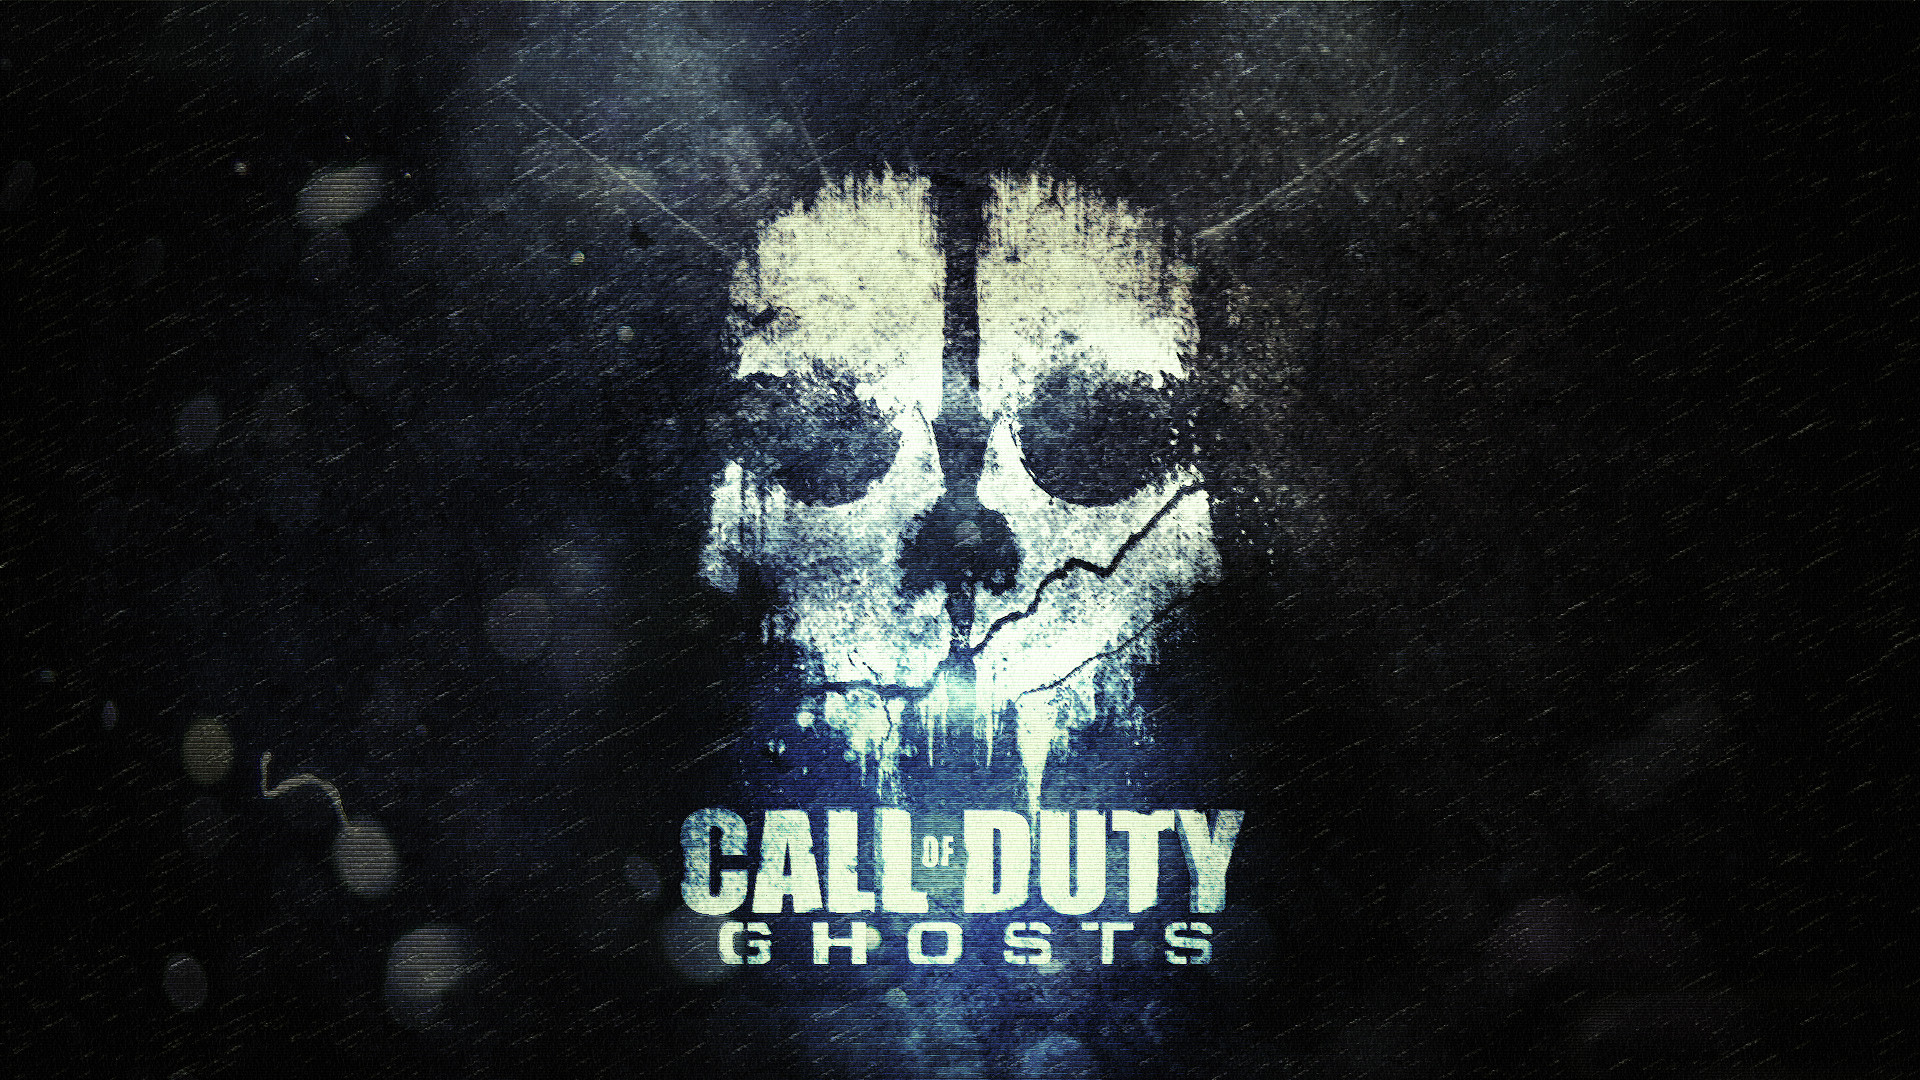 1920x1080 1920 x 1080 - Call of Duty Ghosts Wallpaper - Ghost Logo Design